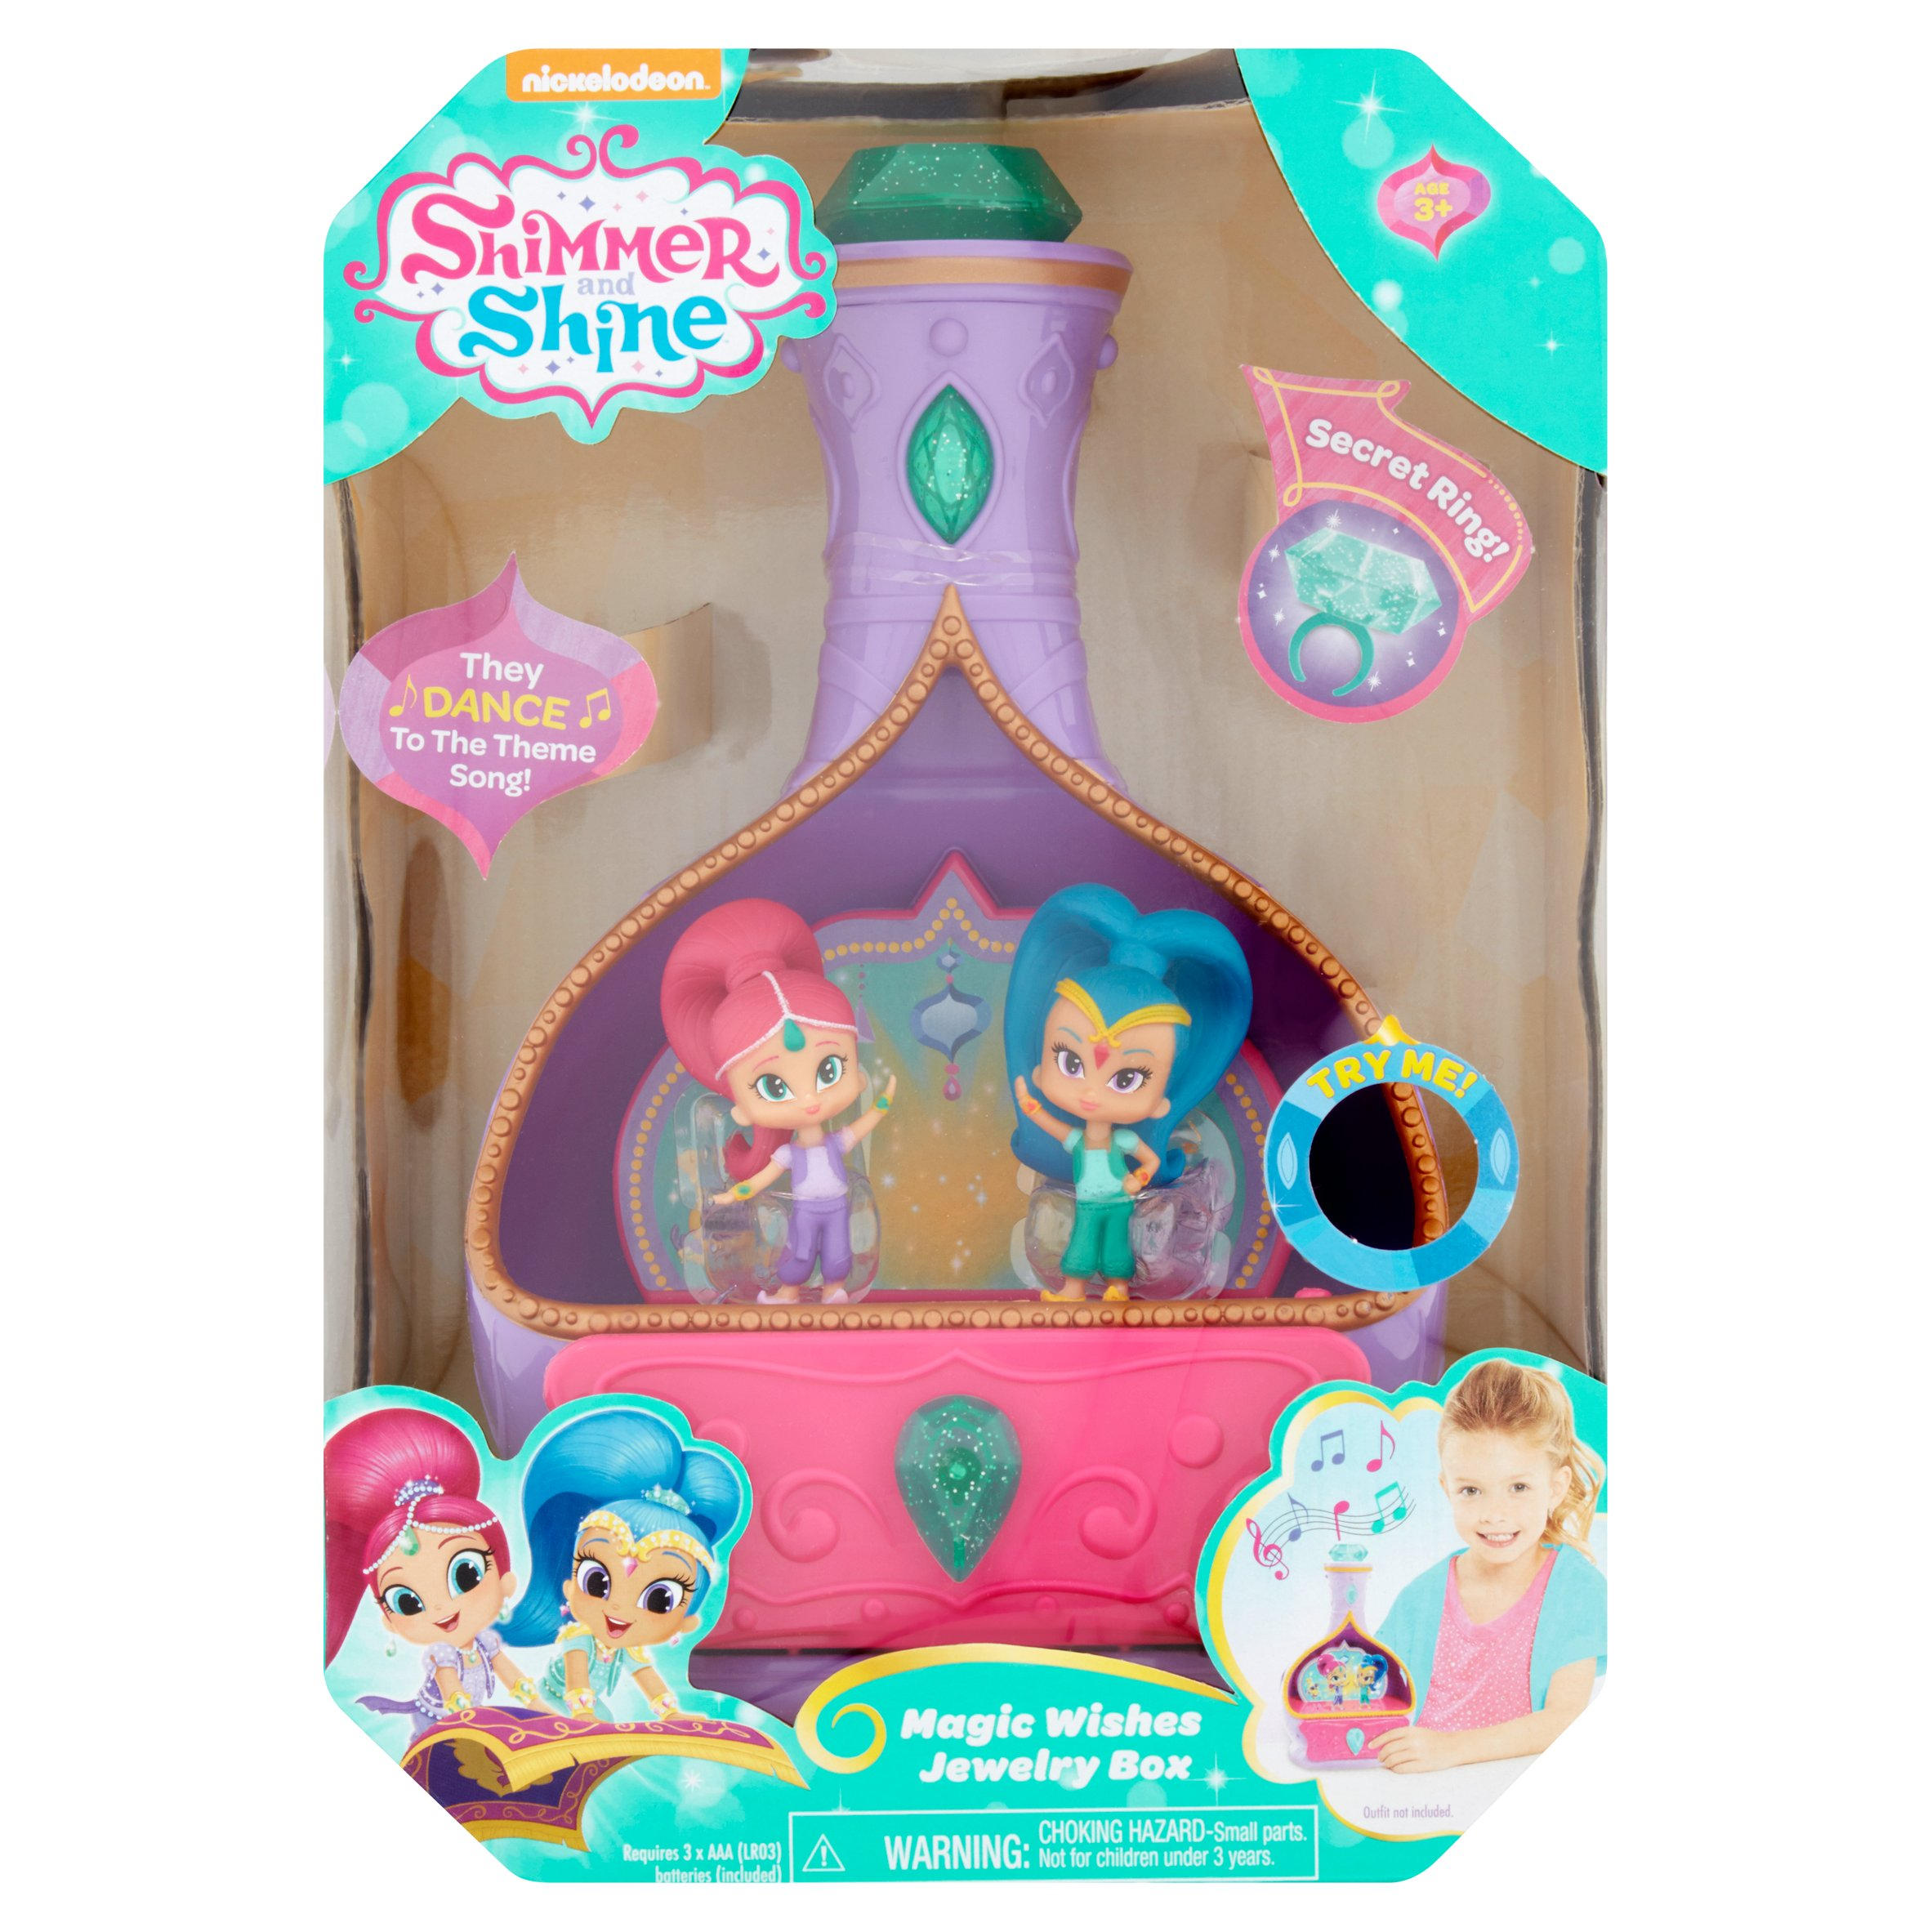 Nickelodeon Shimmer and Shine Magic Wishes Jewelry Box Age 3+